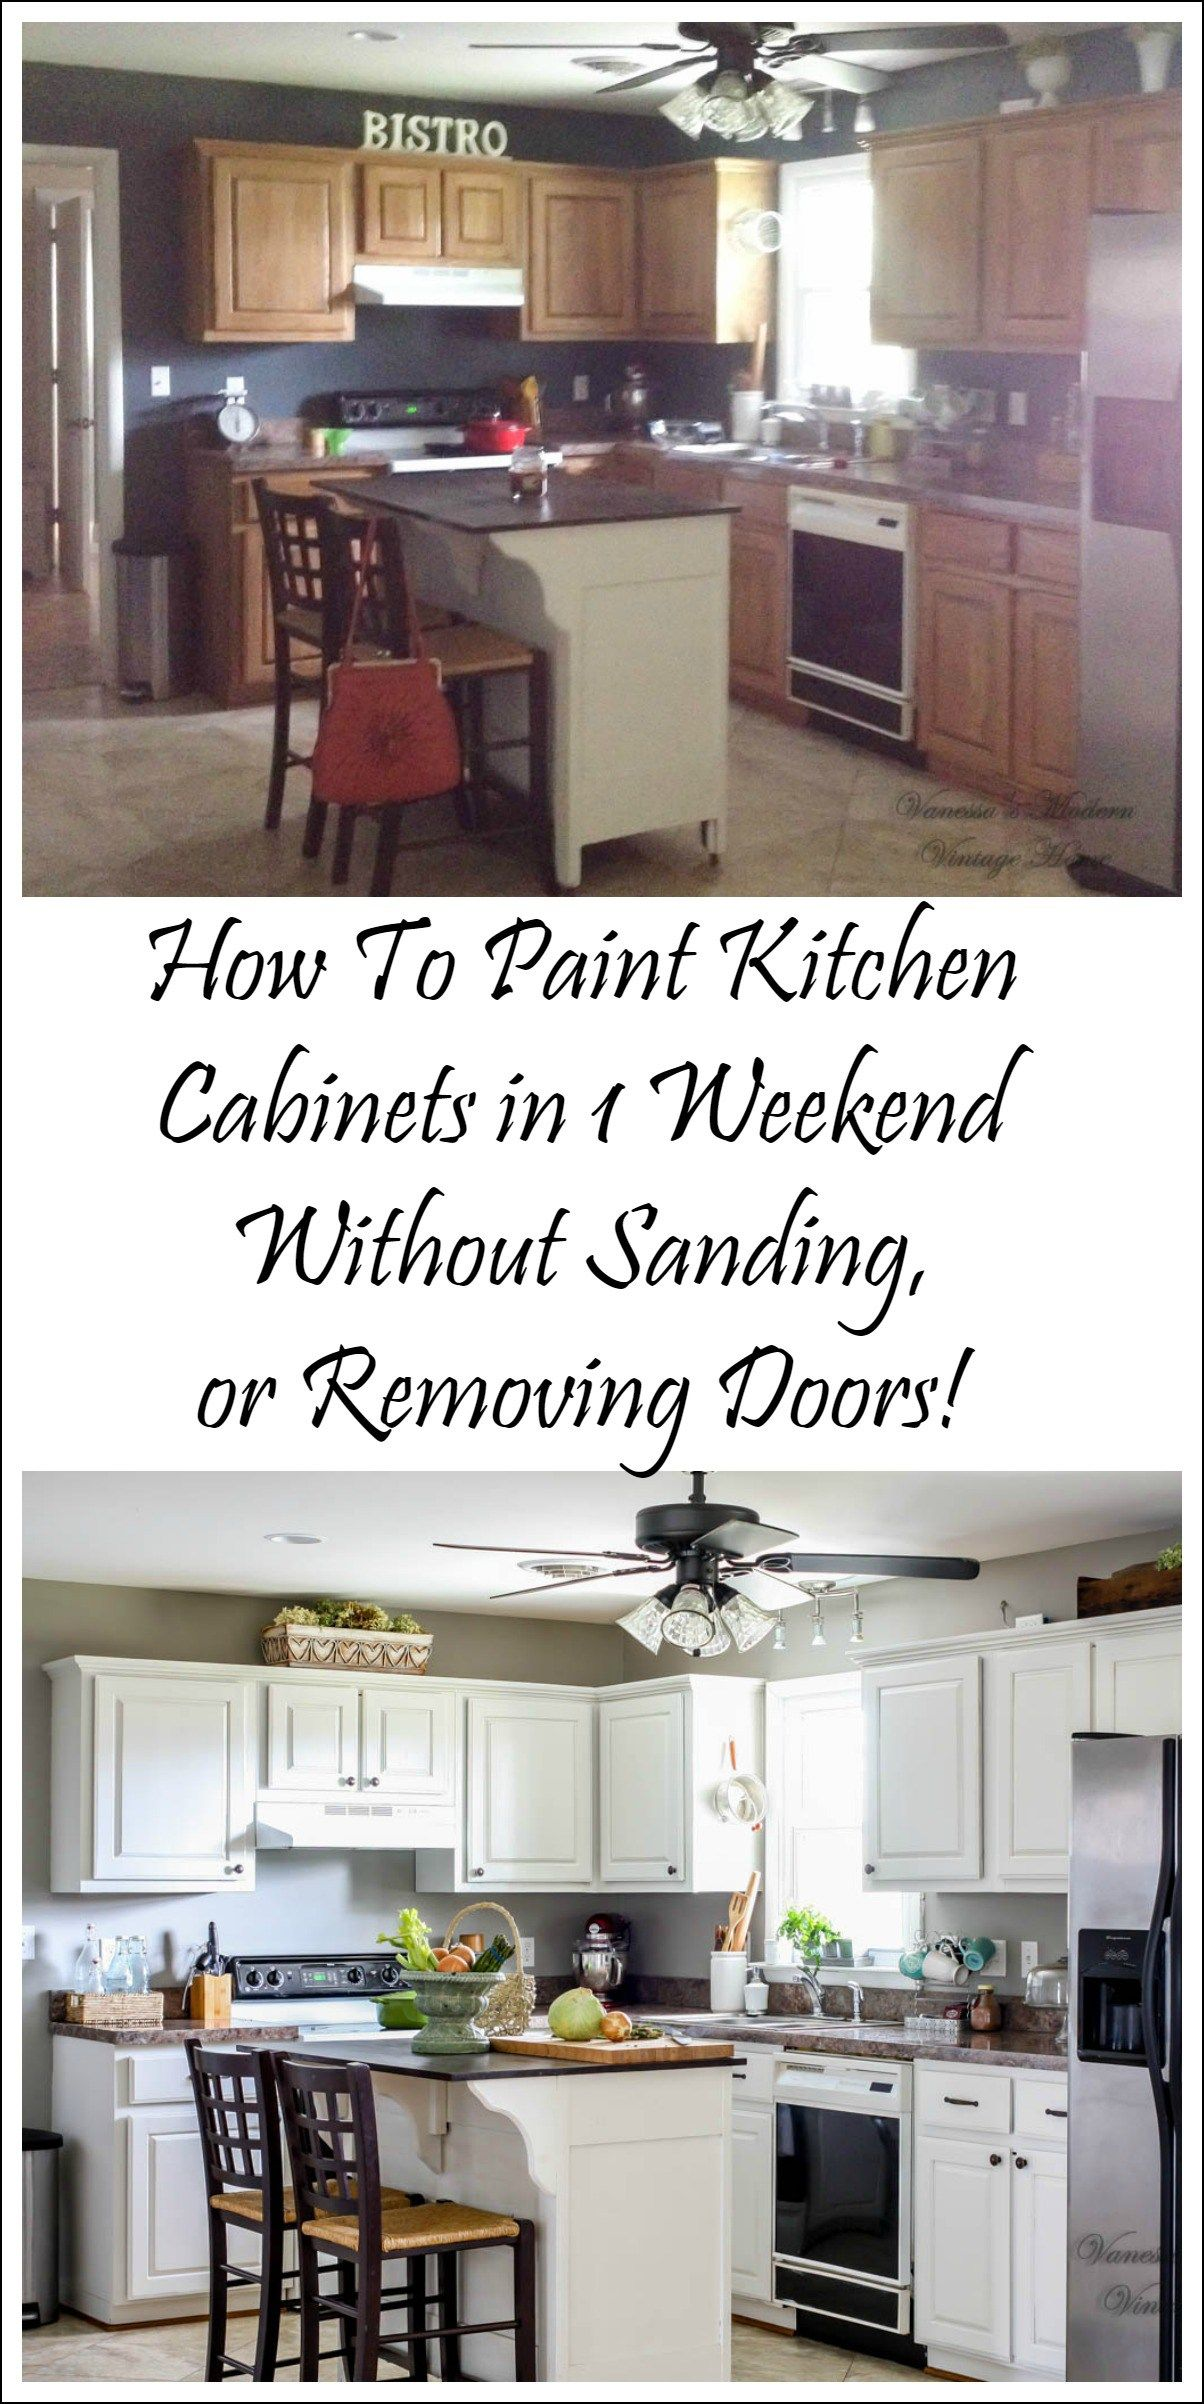 How I Painted My Kitchen Cabinets Without Removing The Doors Painting Kitchen Cabinets White Painting Kitchen Cabinets New Kitchen Cabinets